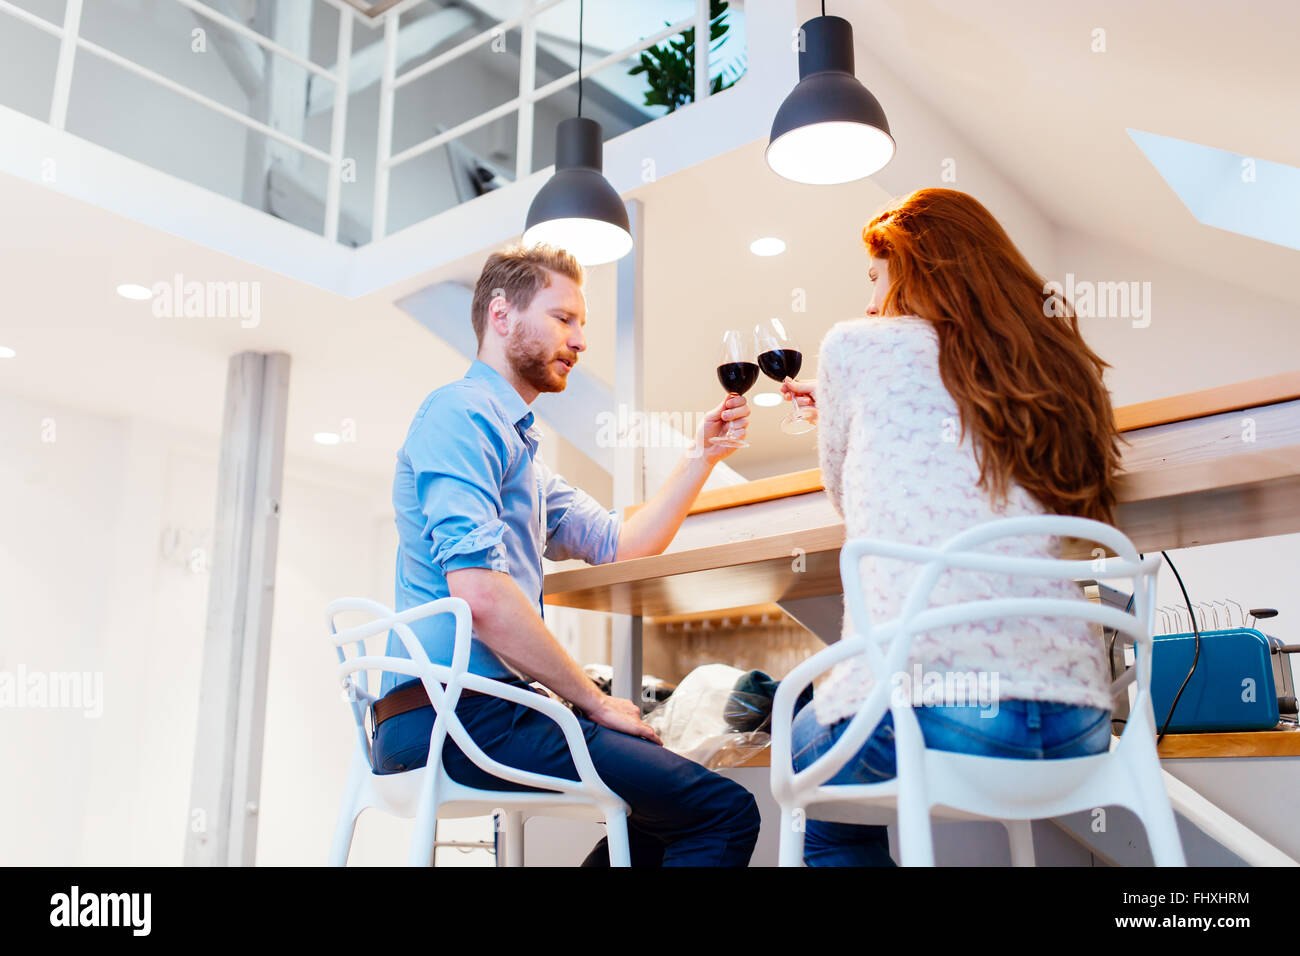 Beautiful couple celebrating moving in to new apartment by toasting wine - Stock Image